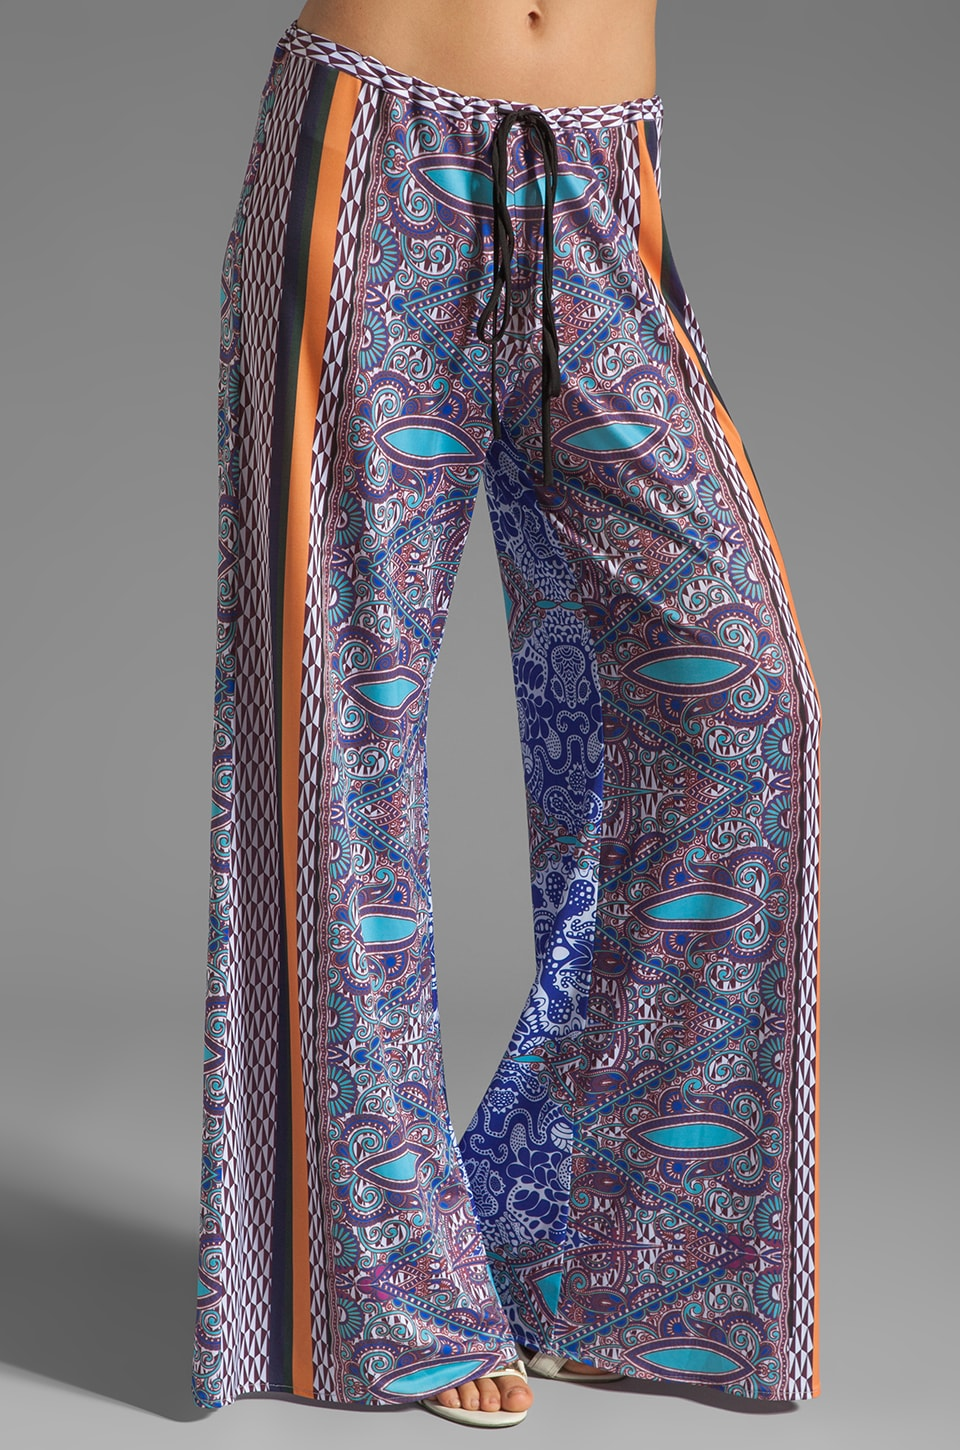 Clover Canyon Baja Border Liquid Jersey Pant in Multi